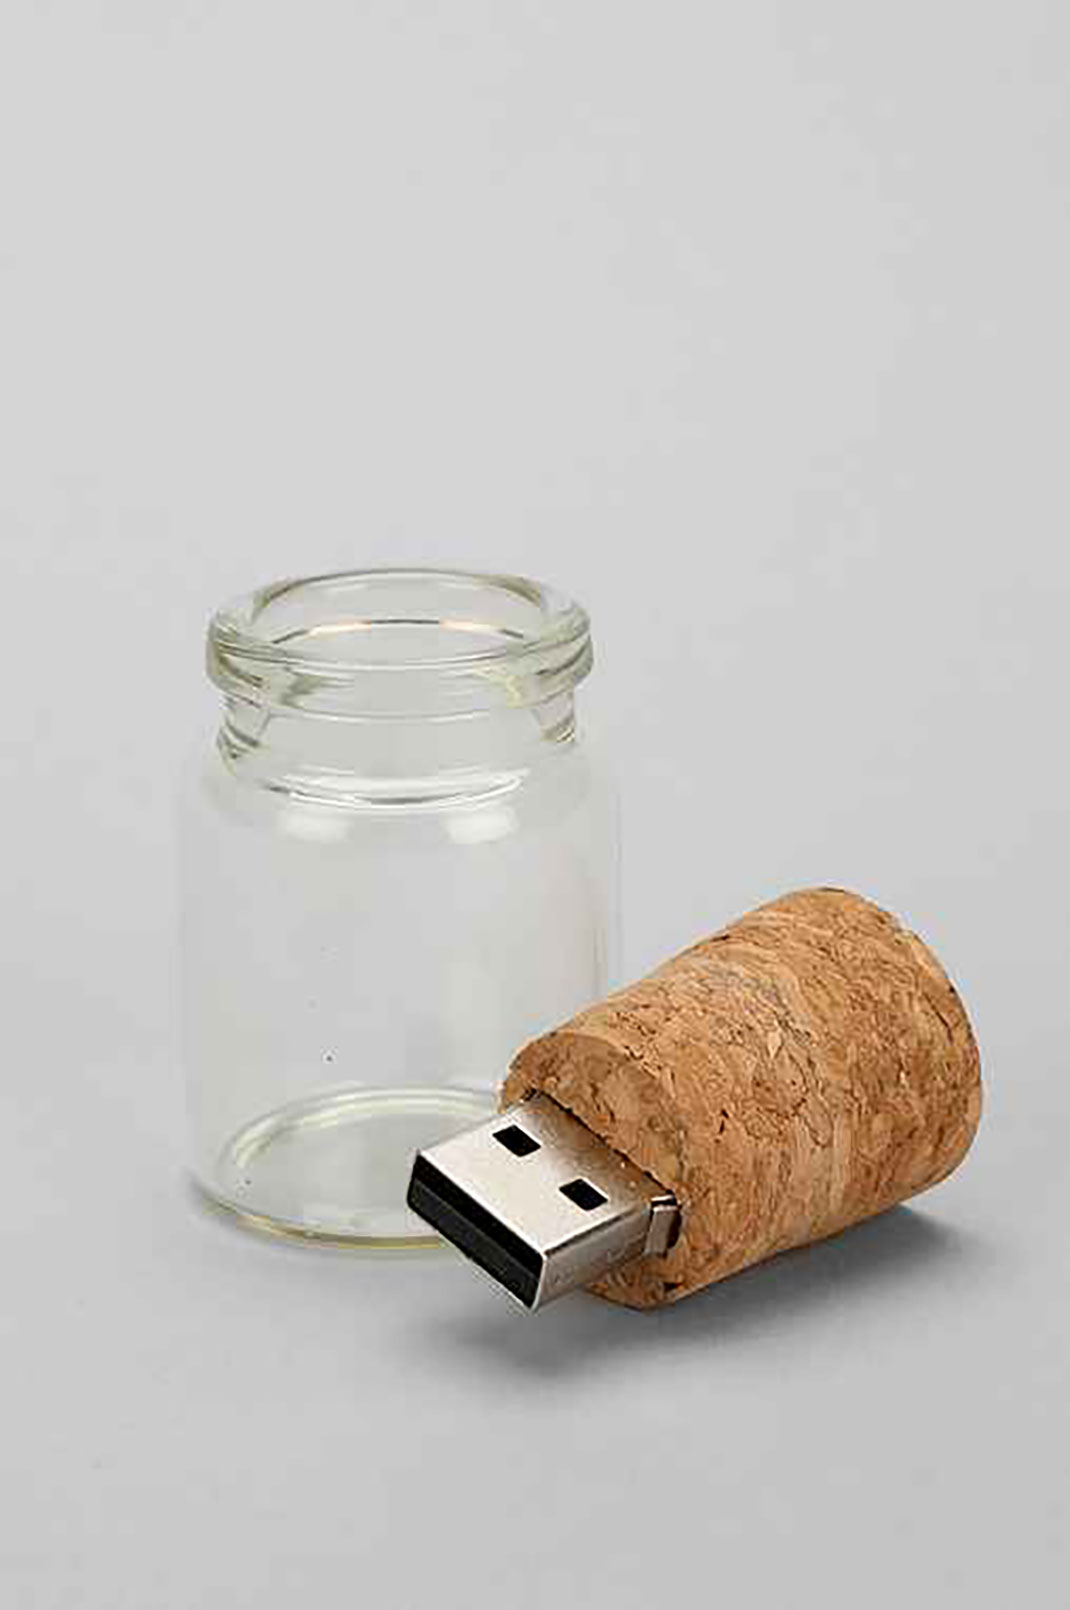 15 Most Surprising USB Designs From The Geek World-1